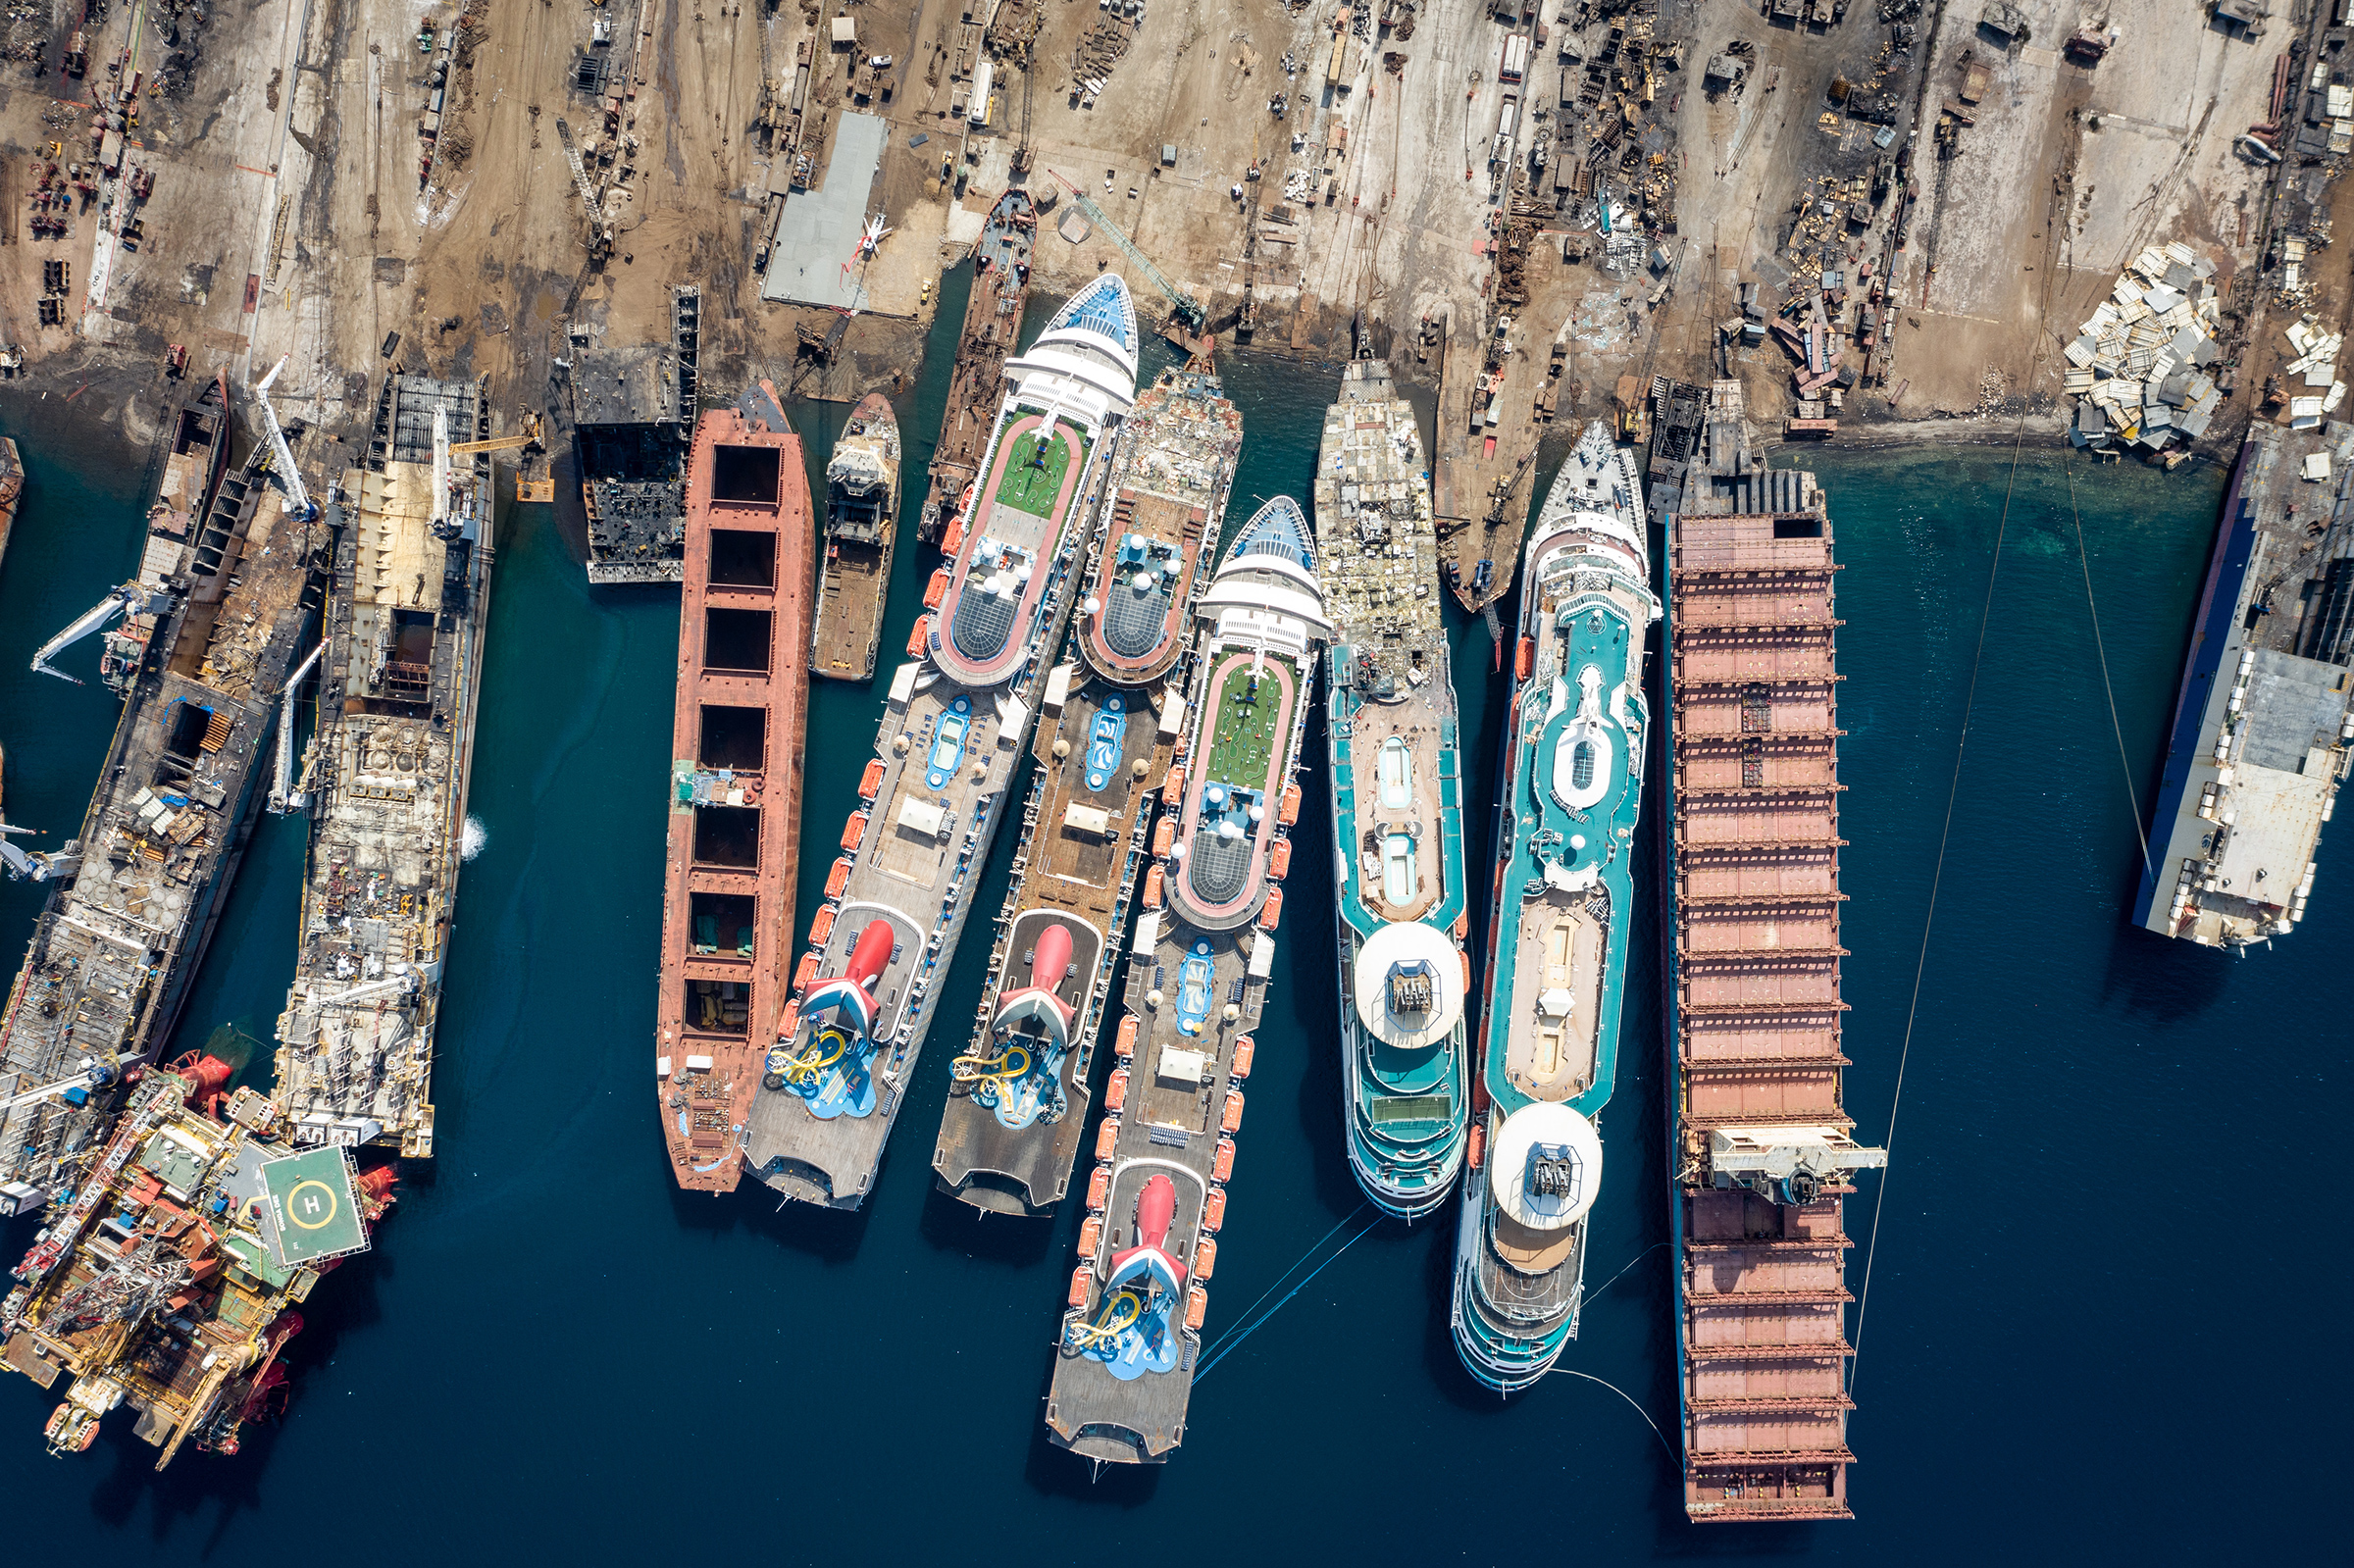 Five luxury cruise ships are seen while being broken down for scrap metal at the Aliaga ship recycling port in Izmir, Turkey, on Oct. 2. As the global pandemic slowed the multi-billion dollar cruise industry, and with public confidence in cruise vacations down after a series of outbreaks, some operators have been forced to cut losses and retire ships earlier than planned. The crisis, however, has bolstered the year's intake of ships at this port.